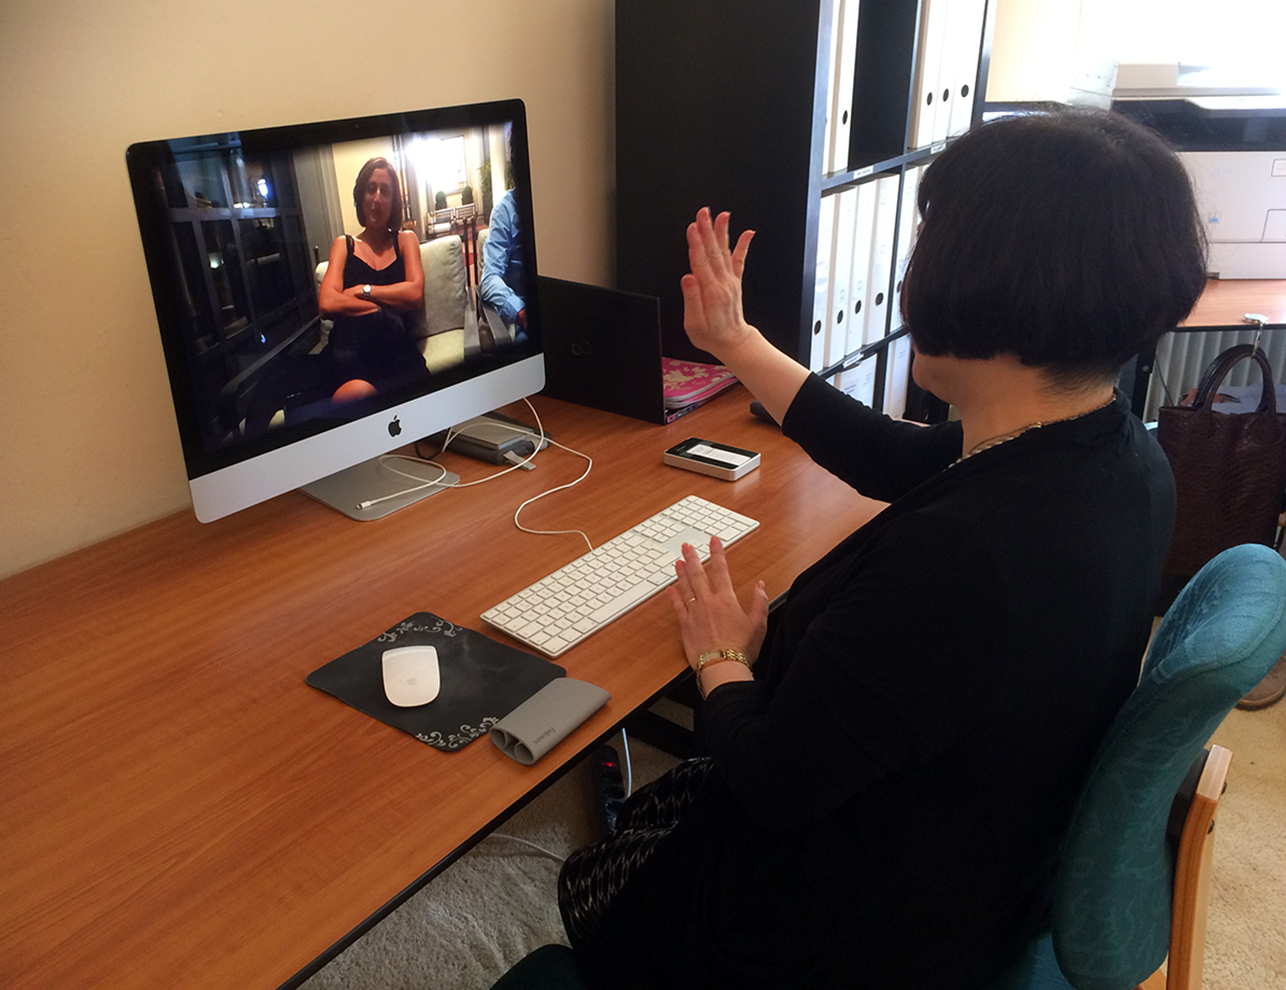 We showed Sachi a video-message which Cecile Zarokian - perfumer of Puredistance SHEIDUNA - made for Sachi while she was in Italy.